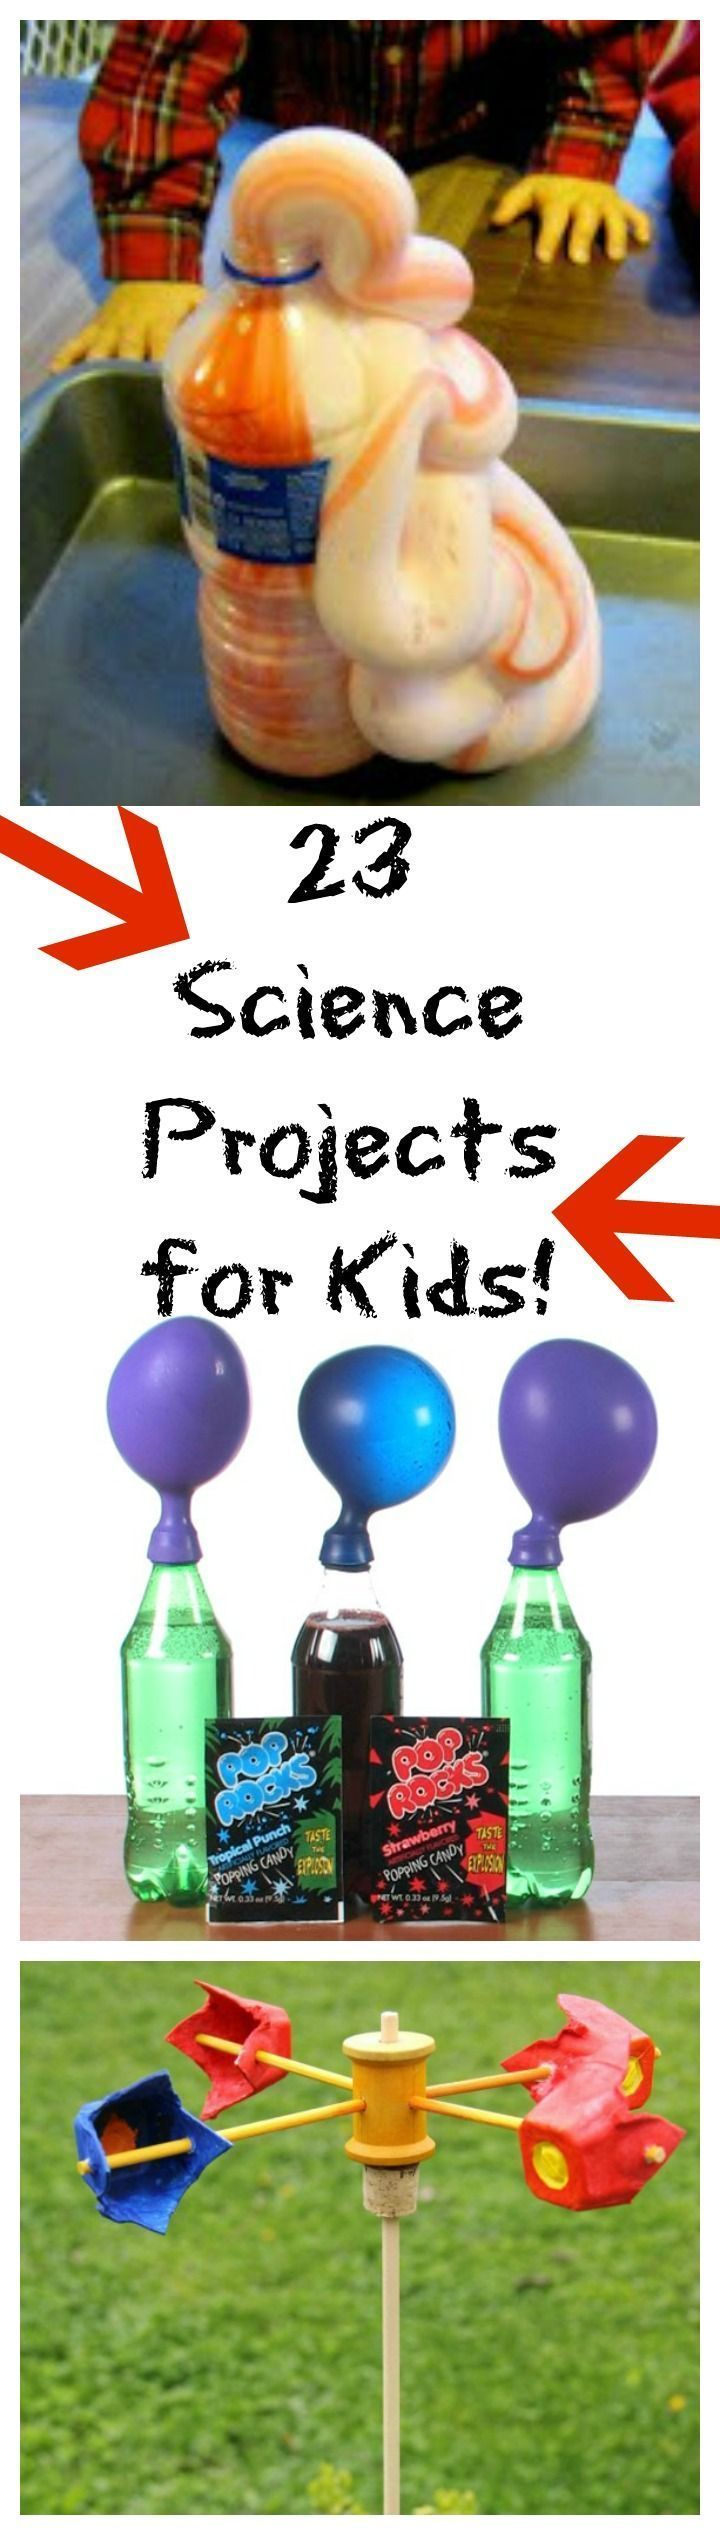 23 Science Projects for Kids!Simply Kinder